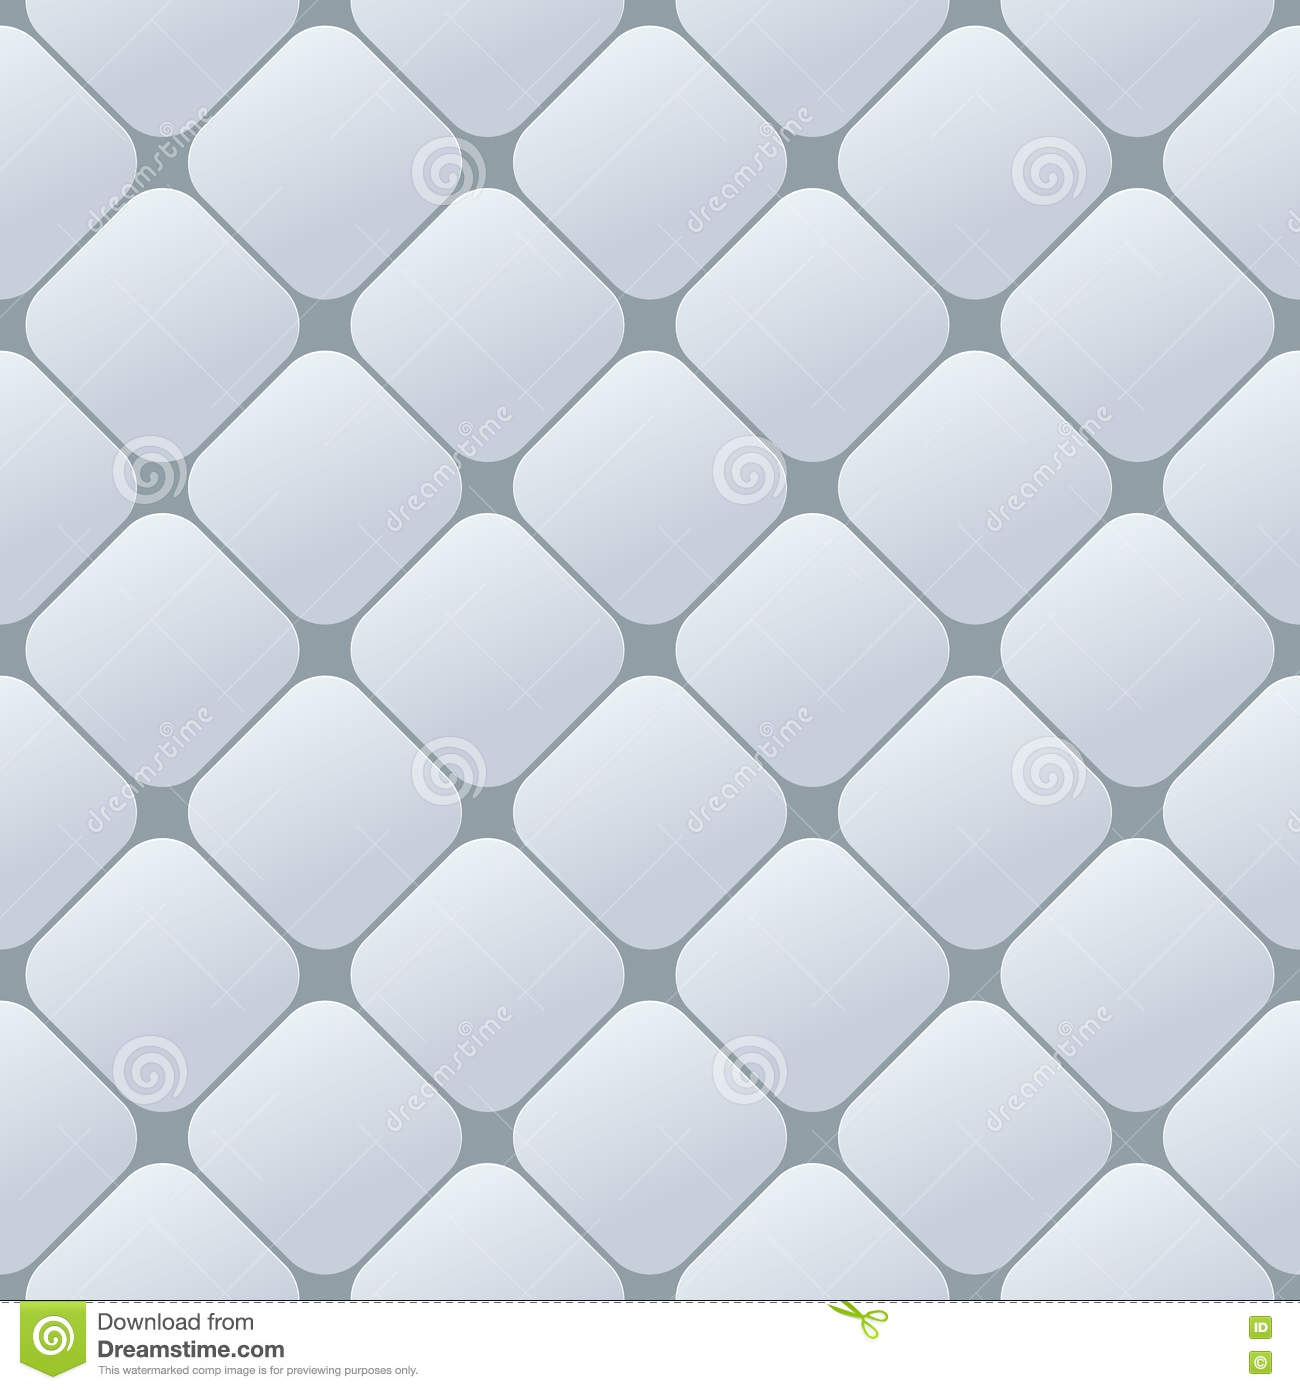 Diamond plate sheets menards diamond plate metal sheet for Wallpaper sheets for sale